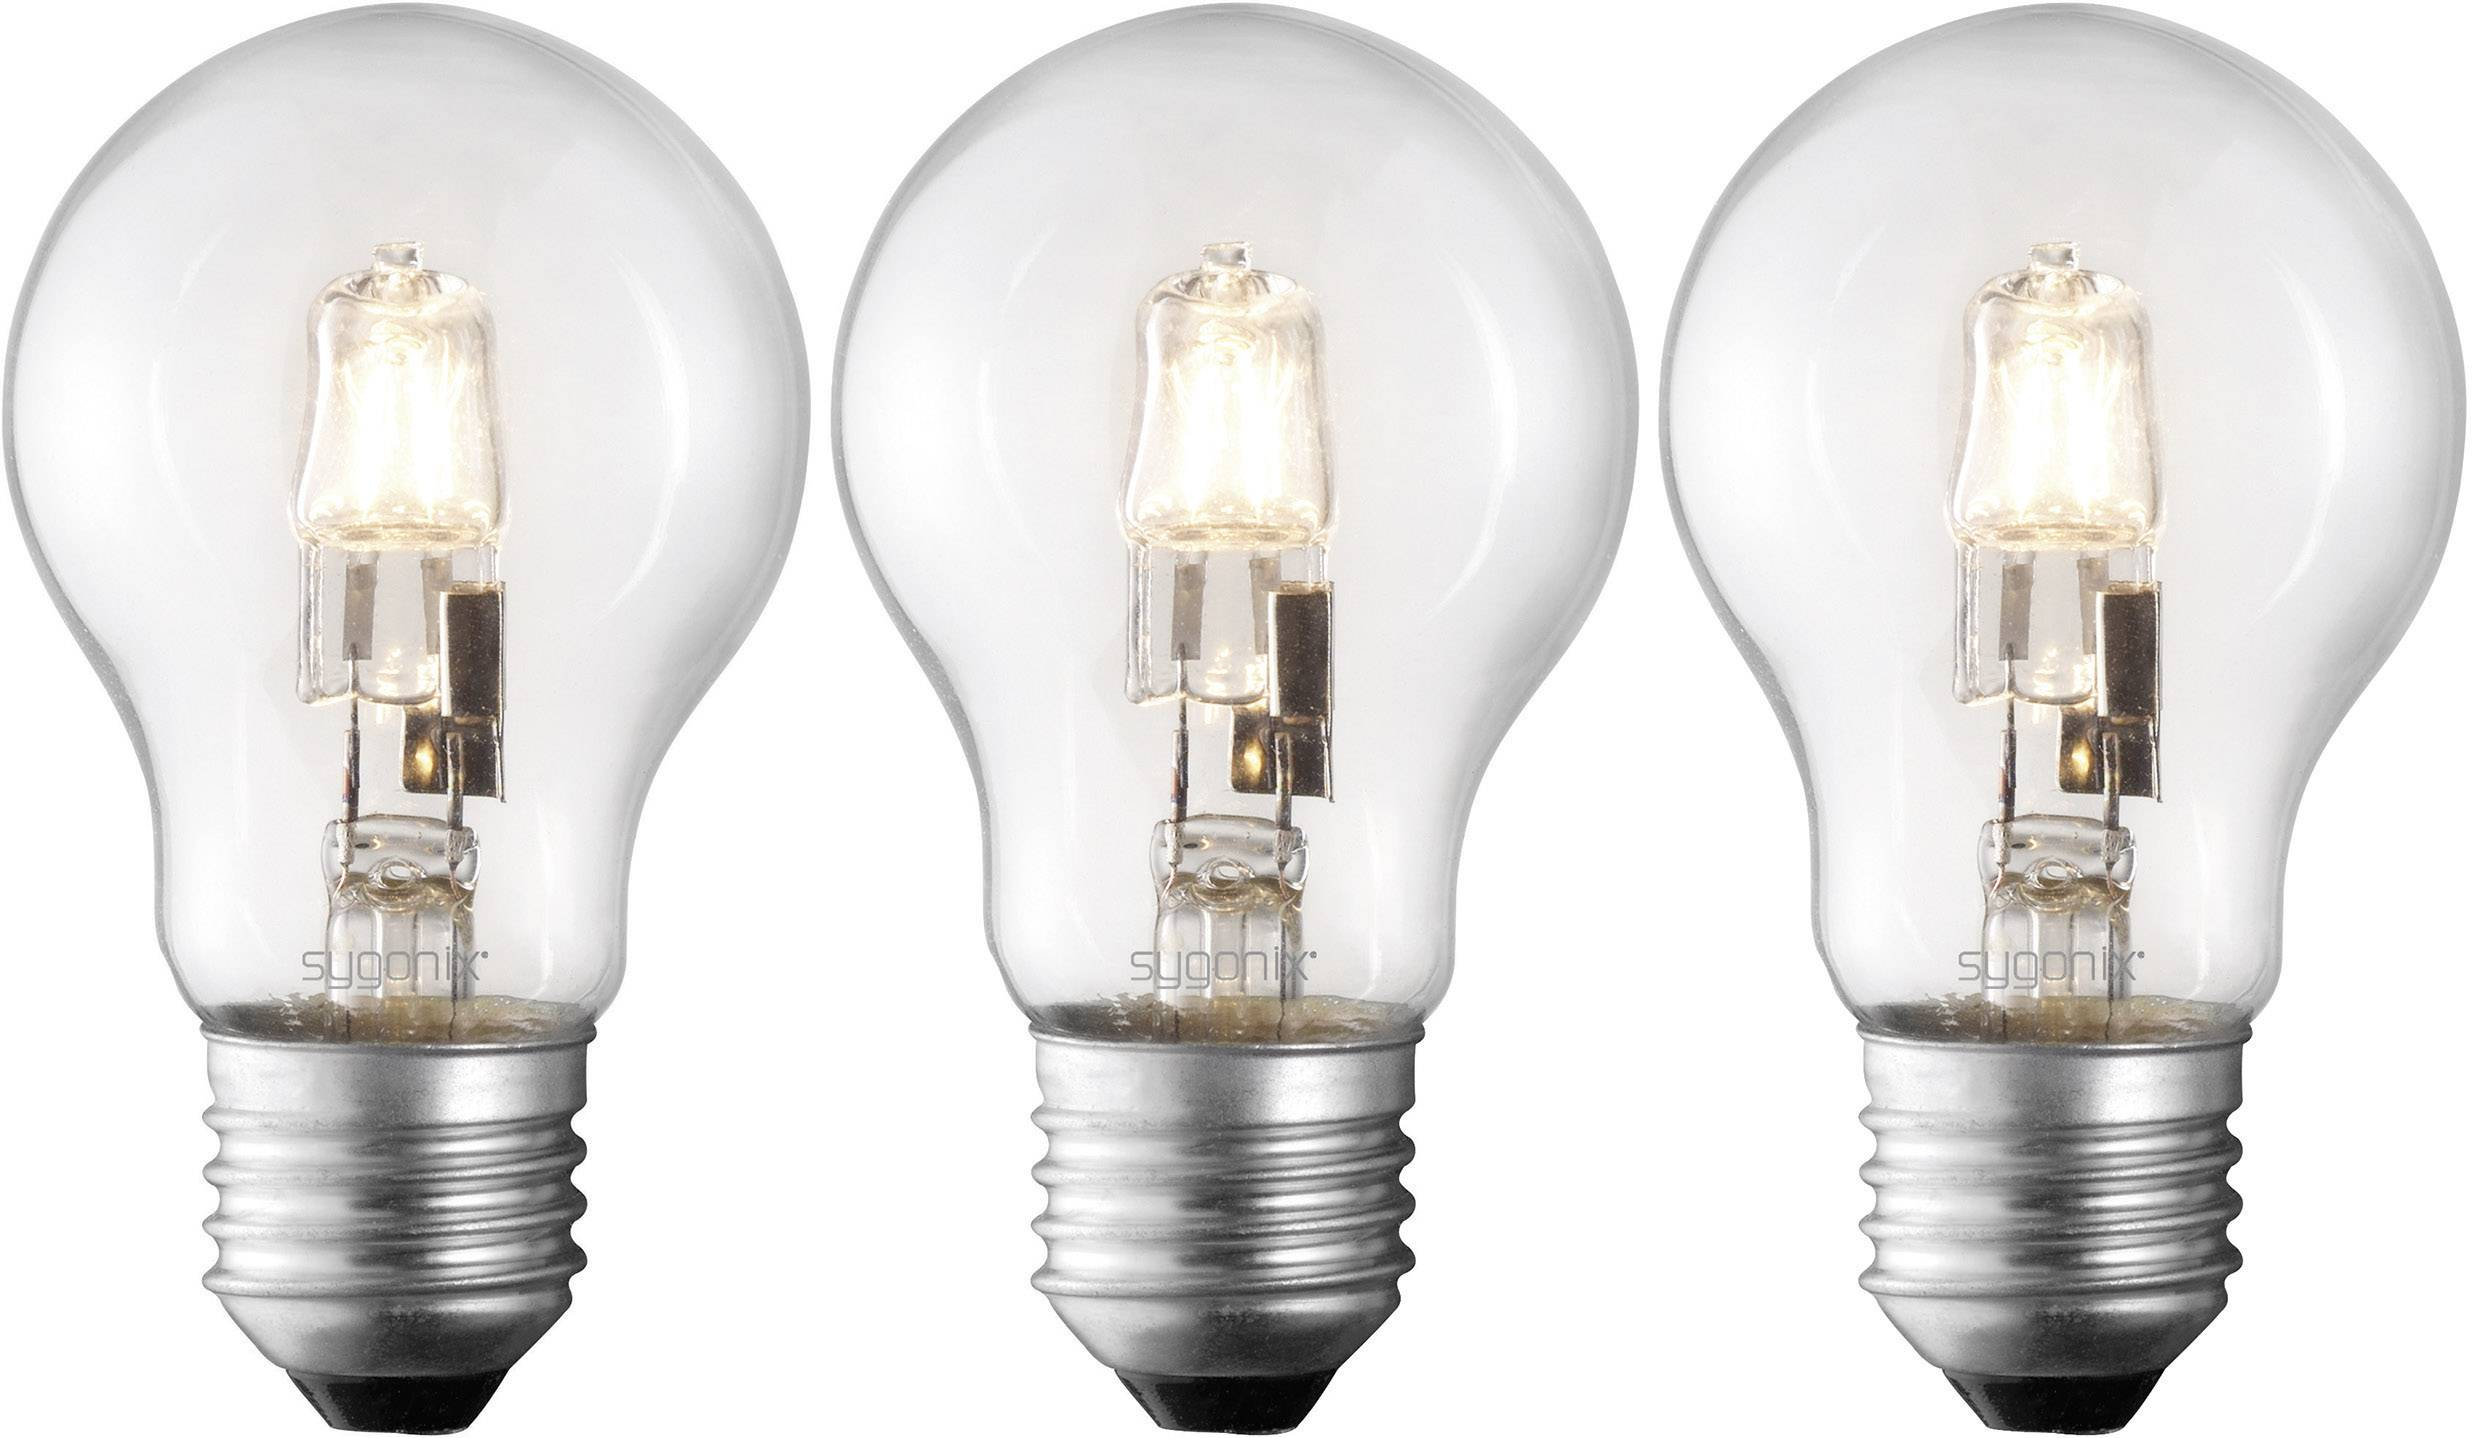 Halogen E27 Sygonix Eco Halogen Eec C A E E27 95 Mm 230 V 42 W Warm White Pear Shape Dimmable 3 Pc S